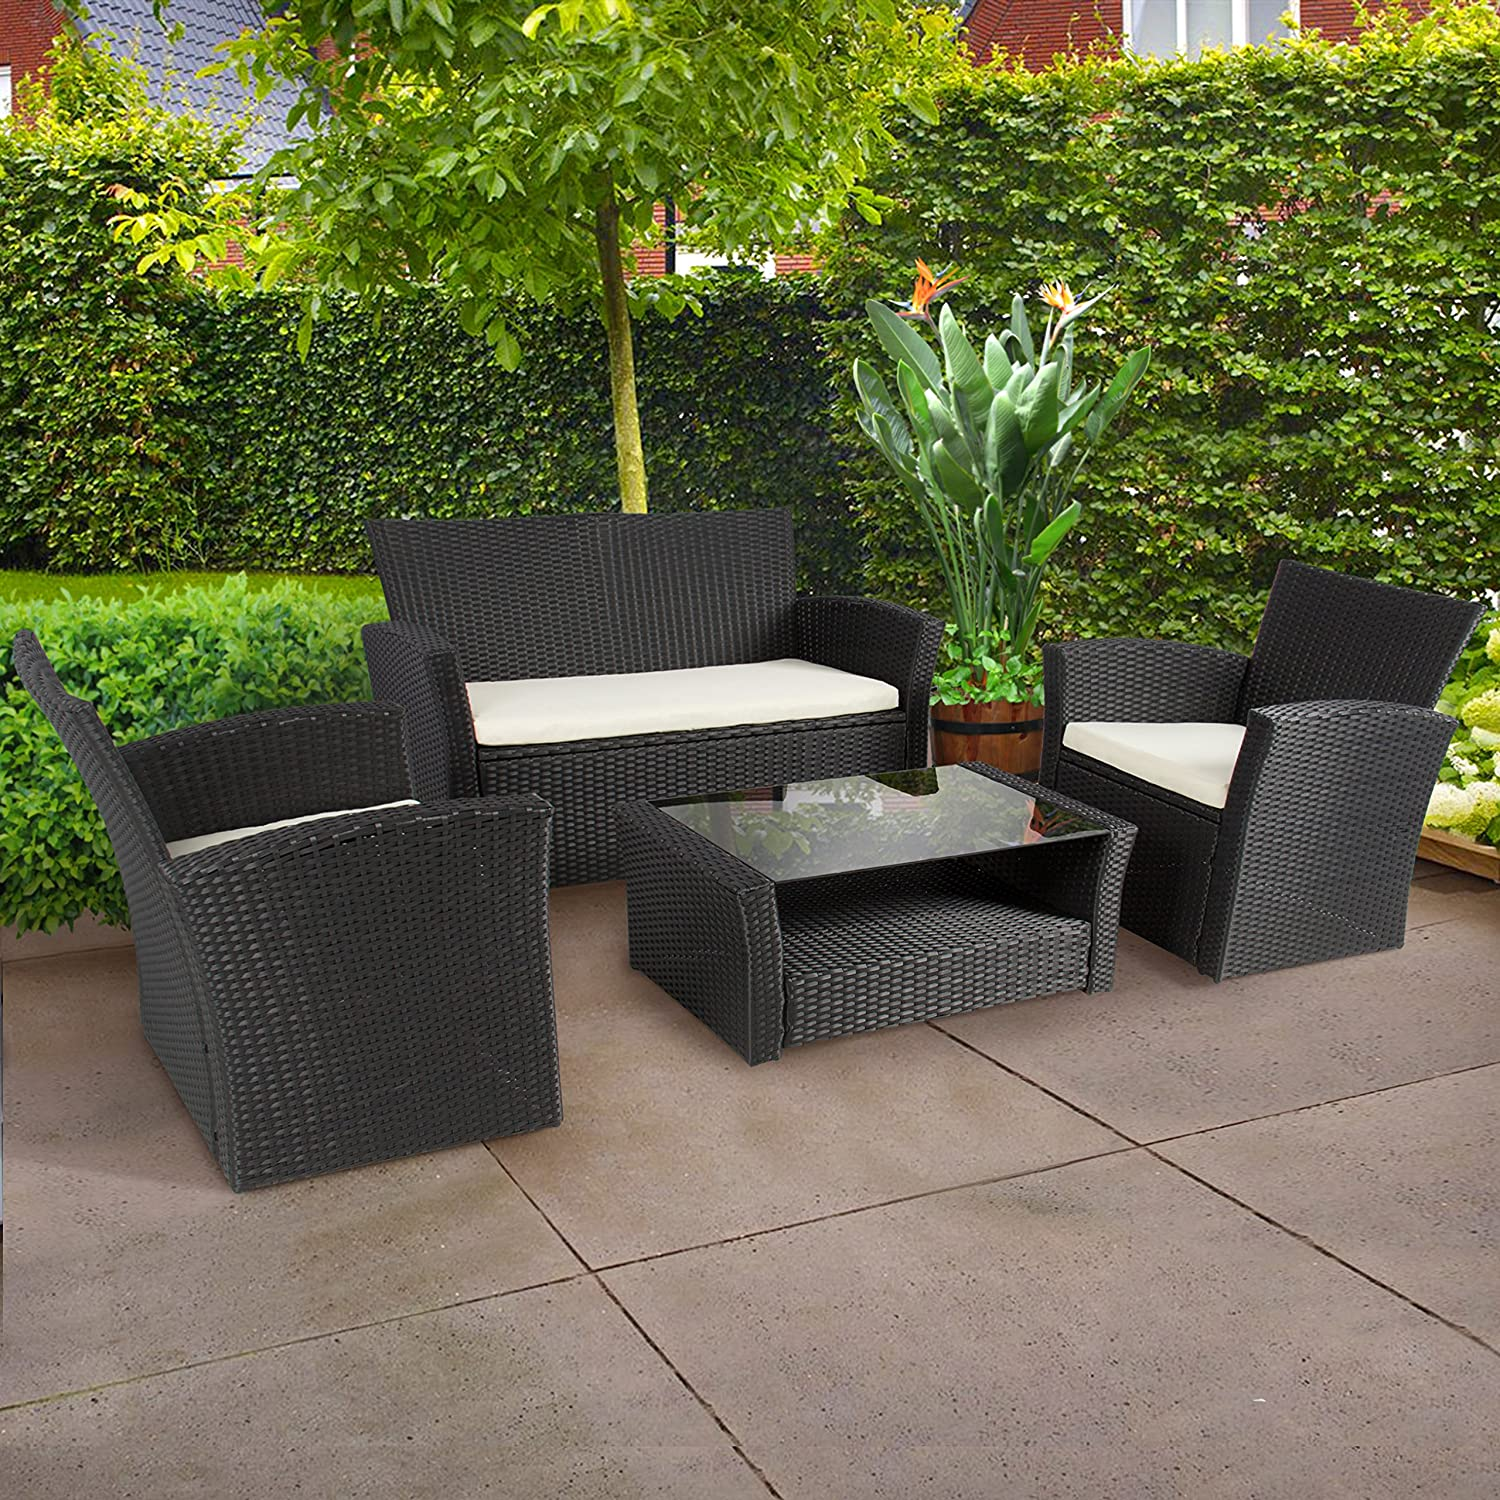 Amazoncom Best Choice Products Pc Outdoor Patio Garden - Outdoor patio furniture wicker